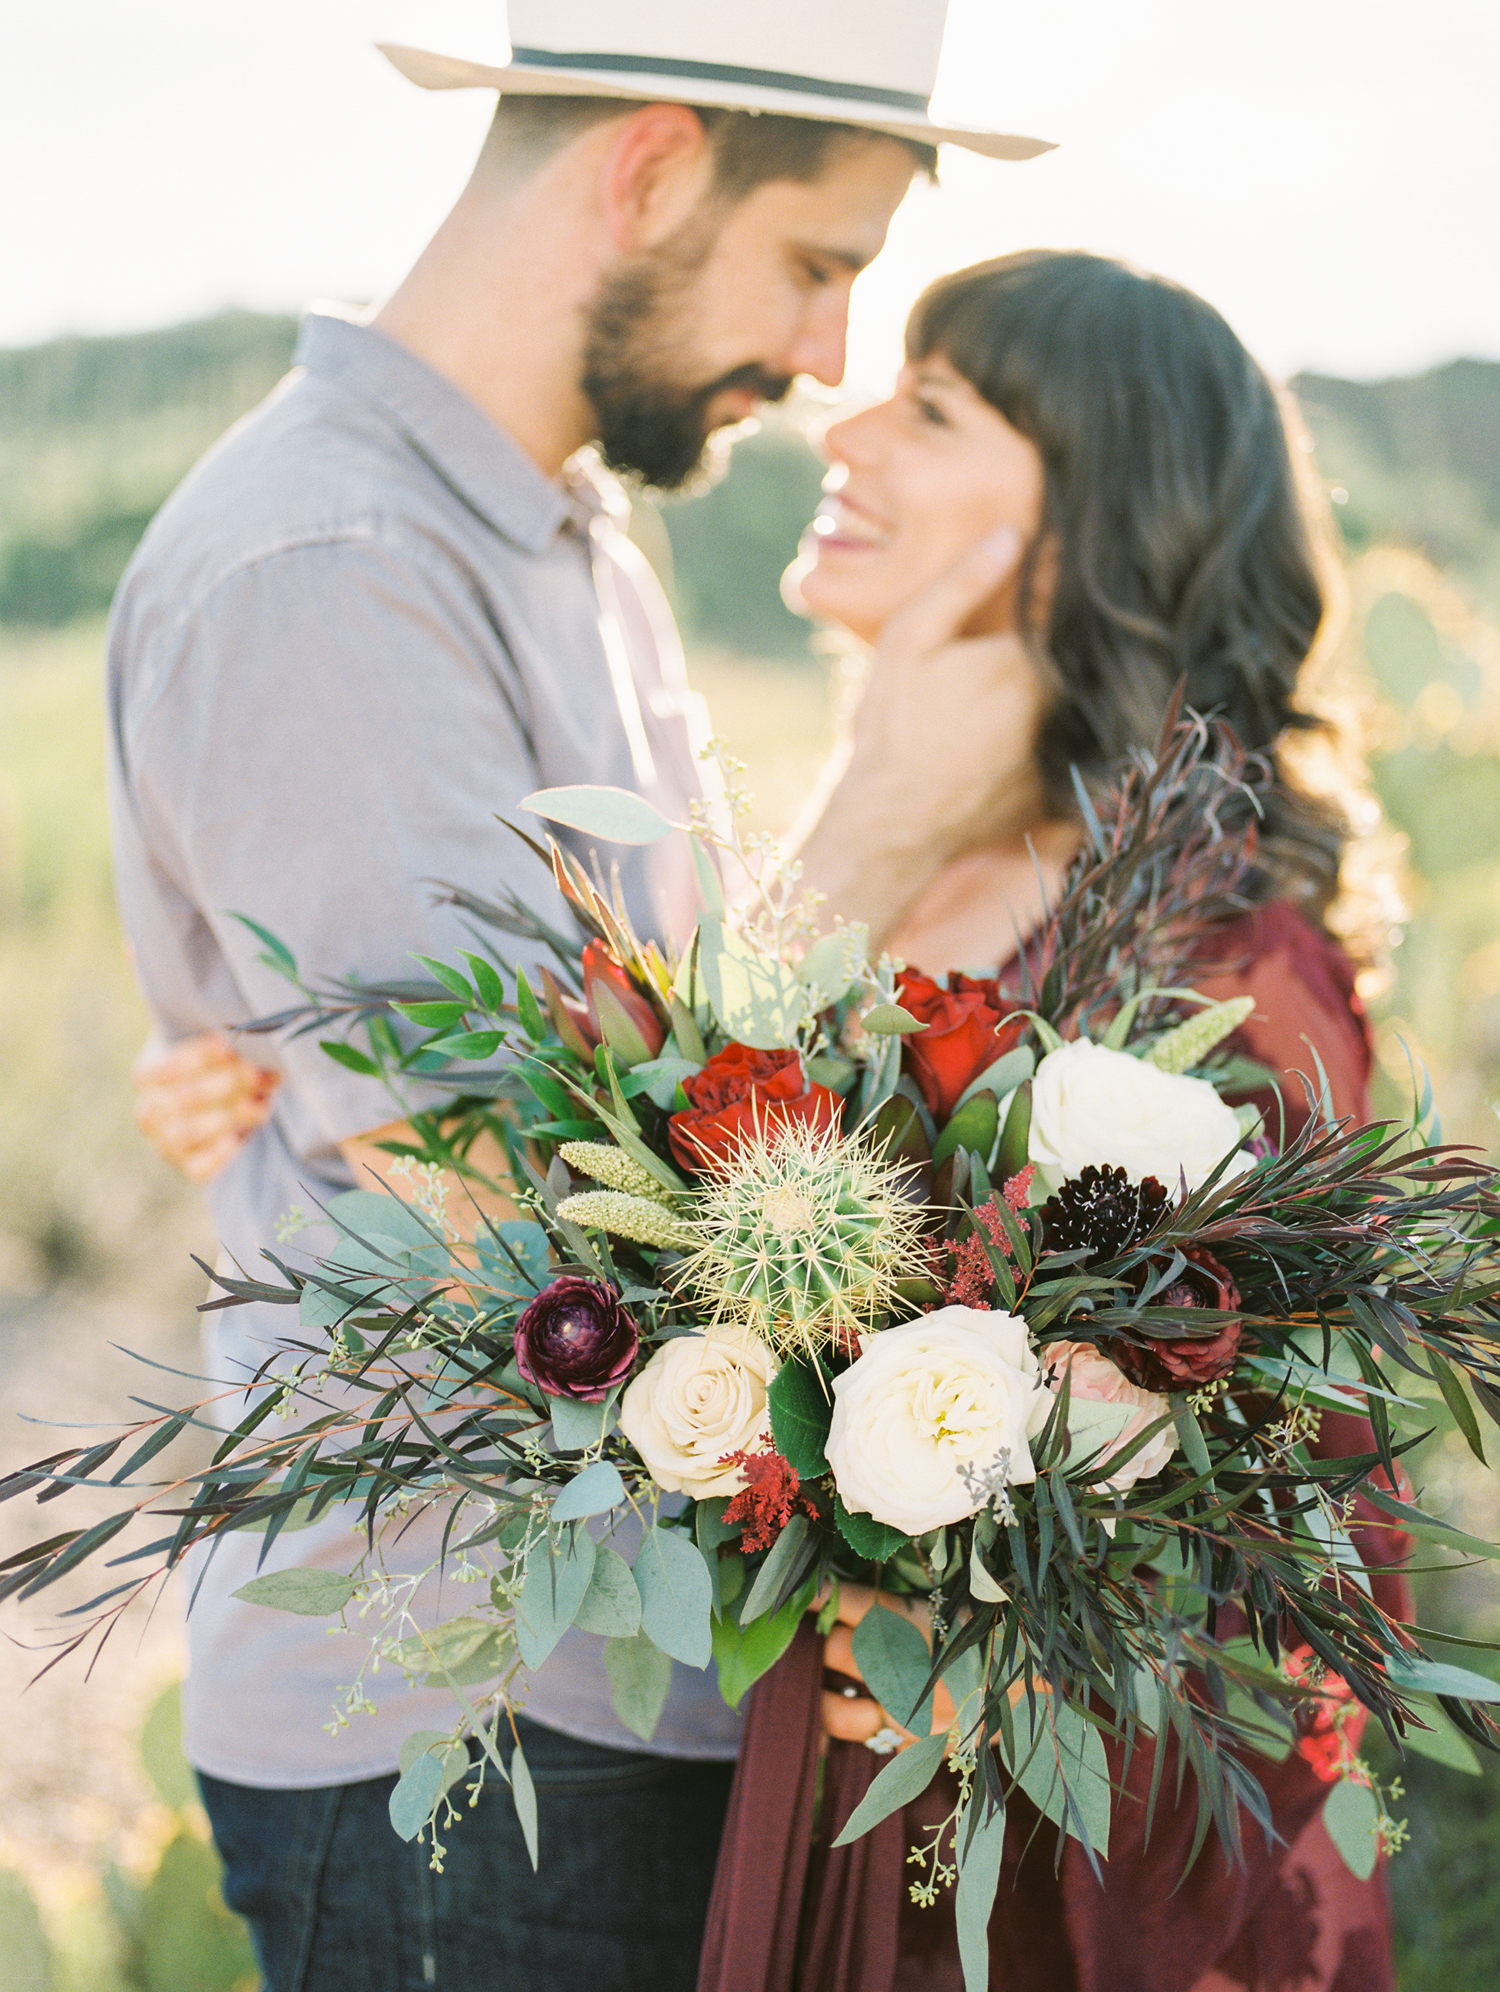 Couple smiling at each other with gorgeous desert backlighting on film and bridal bouquet in the foreground